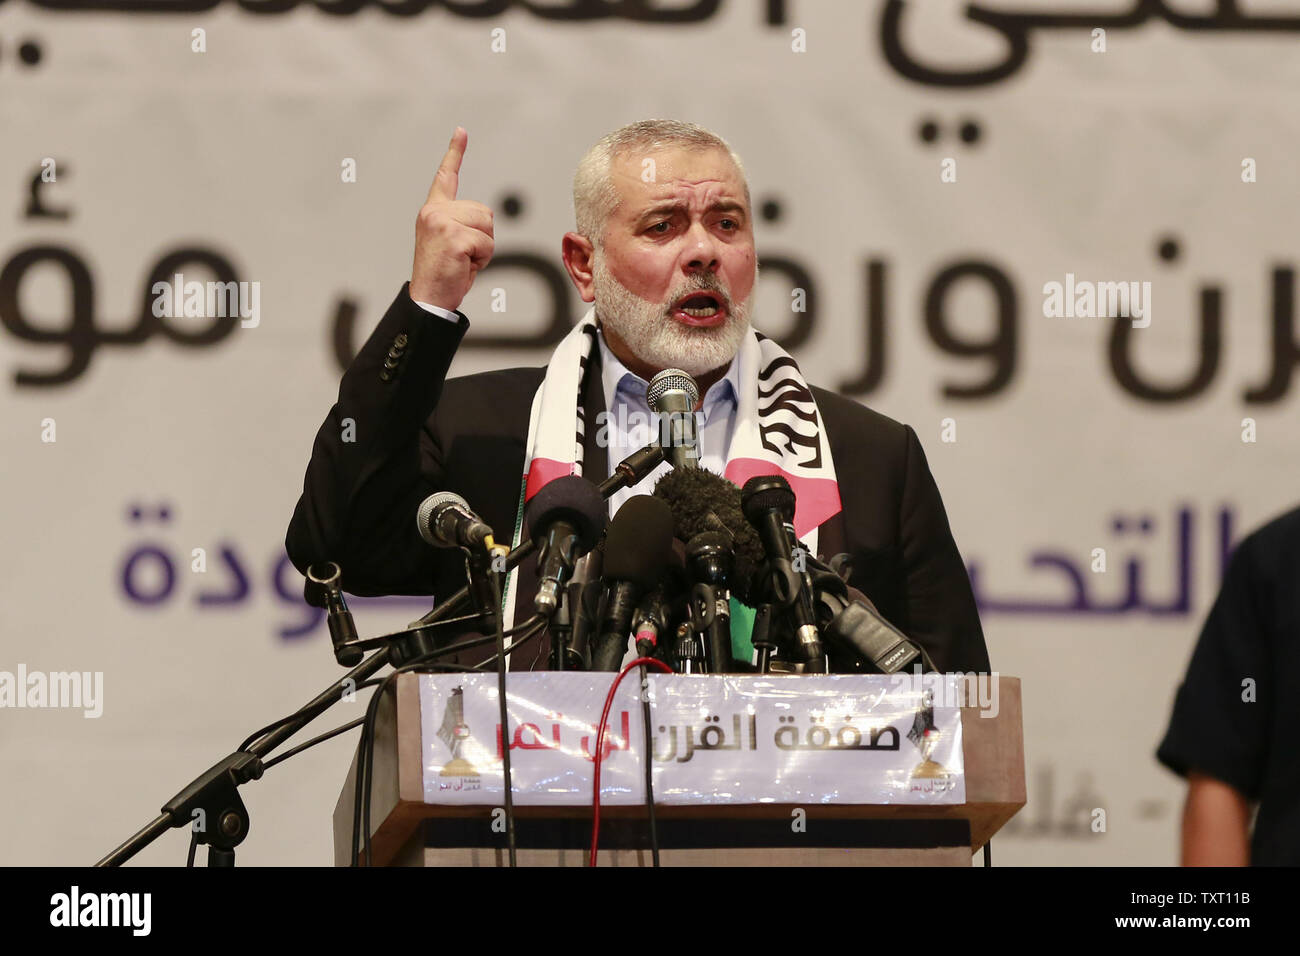 Gaza City, Palestinian Territories. 25th June, 2019. Islamist Hamas movement Chairman Ismail Haniya speaks during a meeting against the US-sponsored conference on Palestinian economic development in Bahrain. The two-day meeting aims at raising 50 billion dollars in investment over 10 years, but Palestinian leaders' refusal to take part is casting serious doubt about the usefulness of the event, called Peace to Prosperity Workshop. Credit: Mohammed Talatene/dpa/Alamy Live News - Stock Image